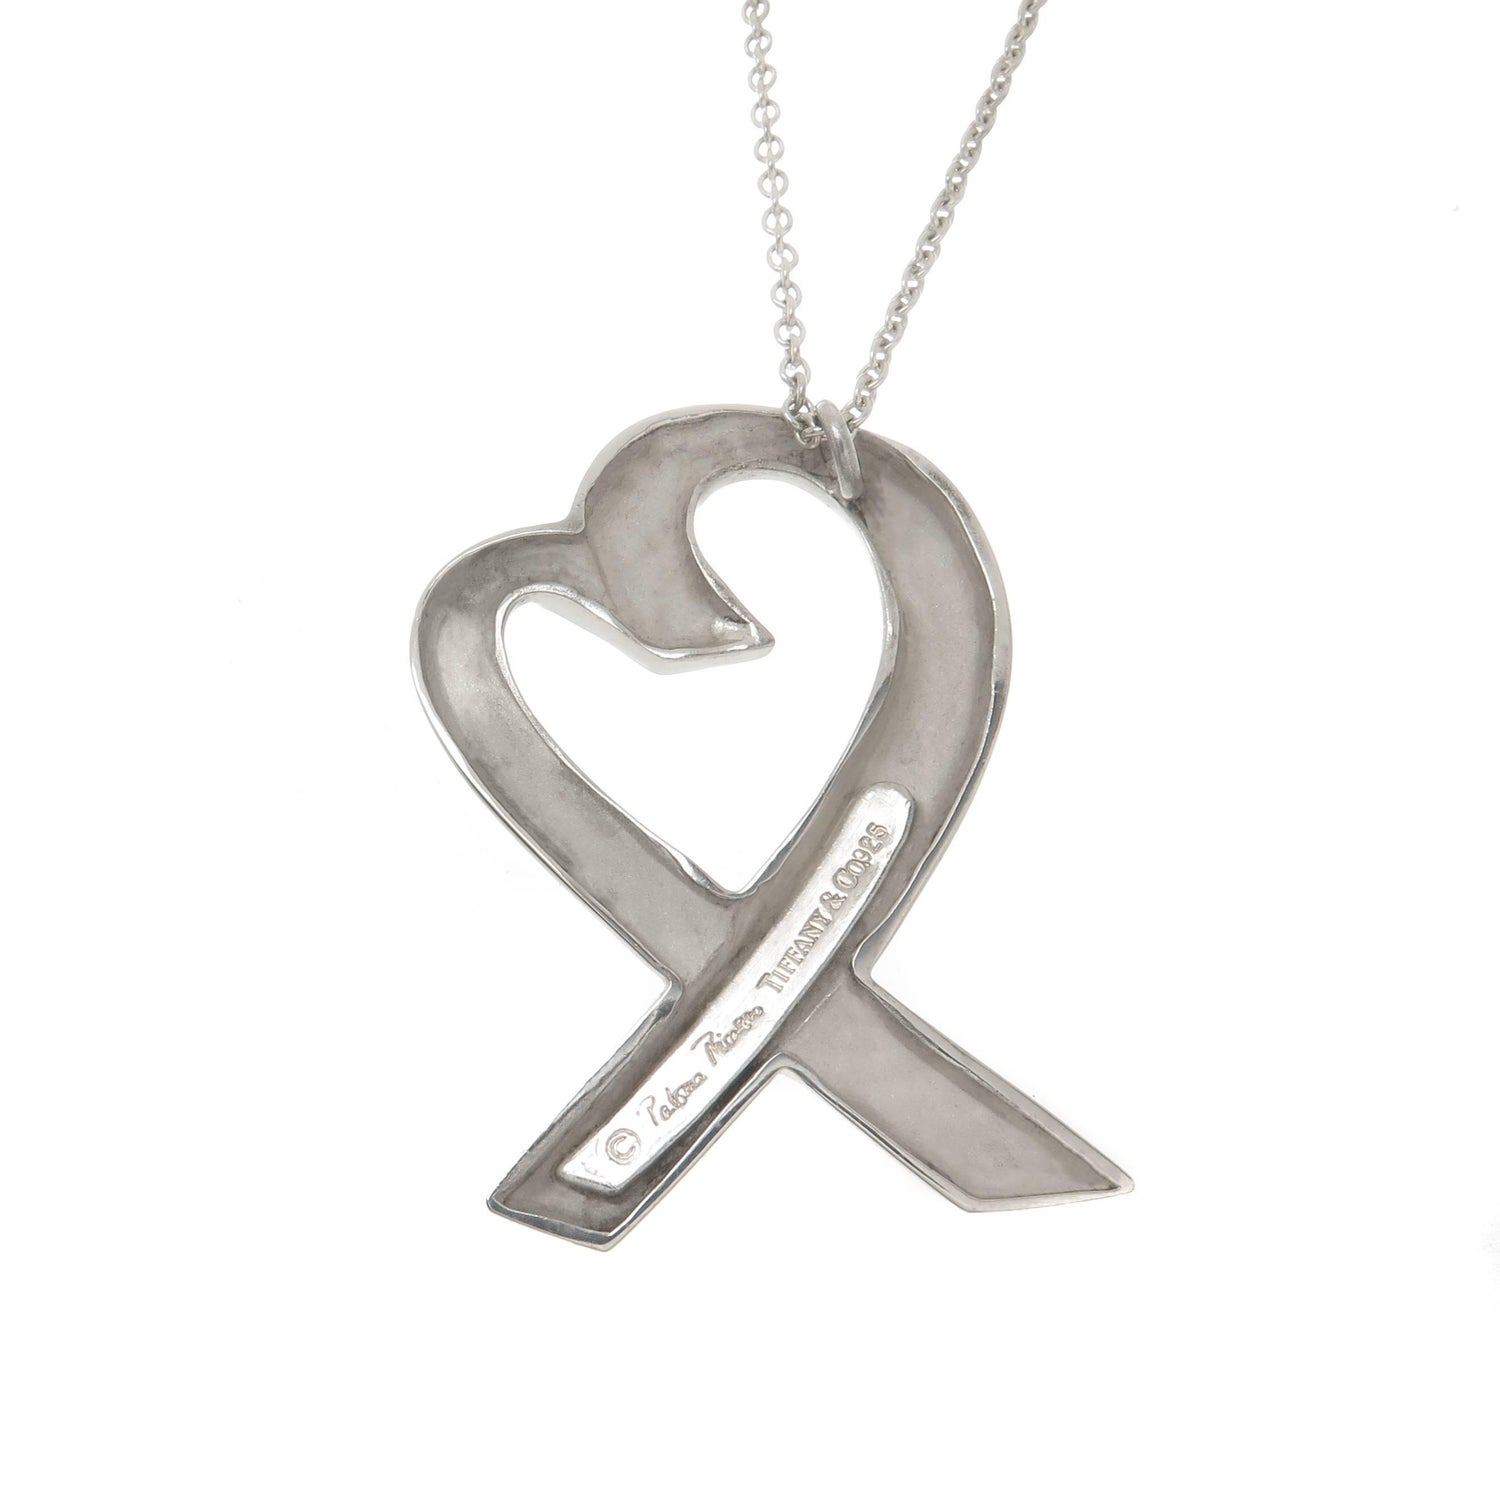 Paloma picasso tiffany and co large silver loving heart necklace paloma picasso tiffany and co large silver loving heart necklace for sale at 1stdibs aloadofball Images